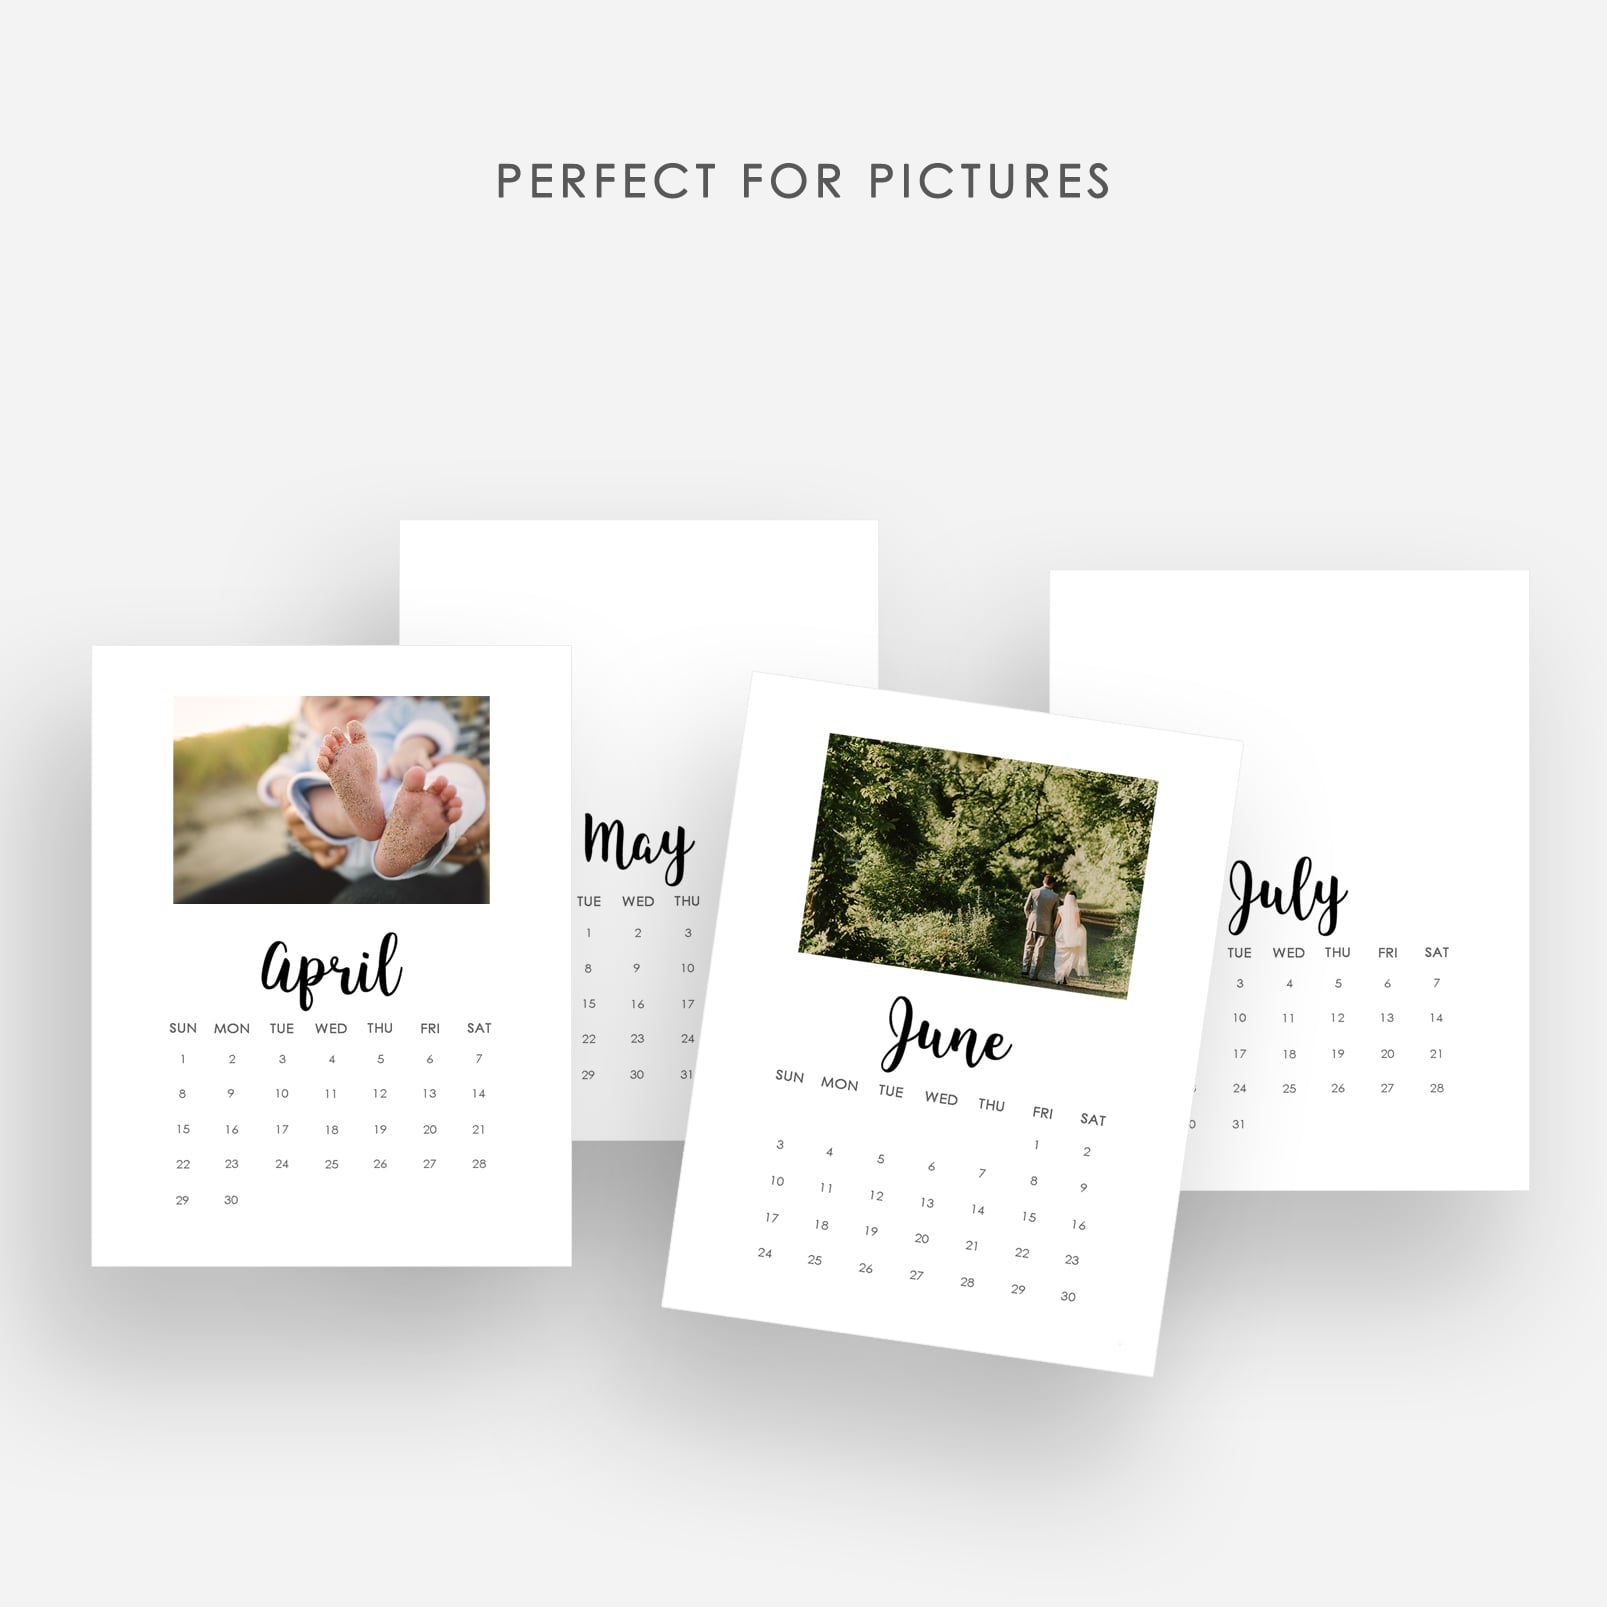 2020 Printable Calendar Template - $9 ONLY - Display photos